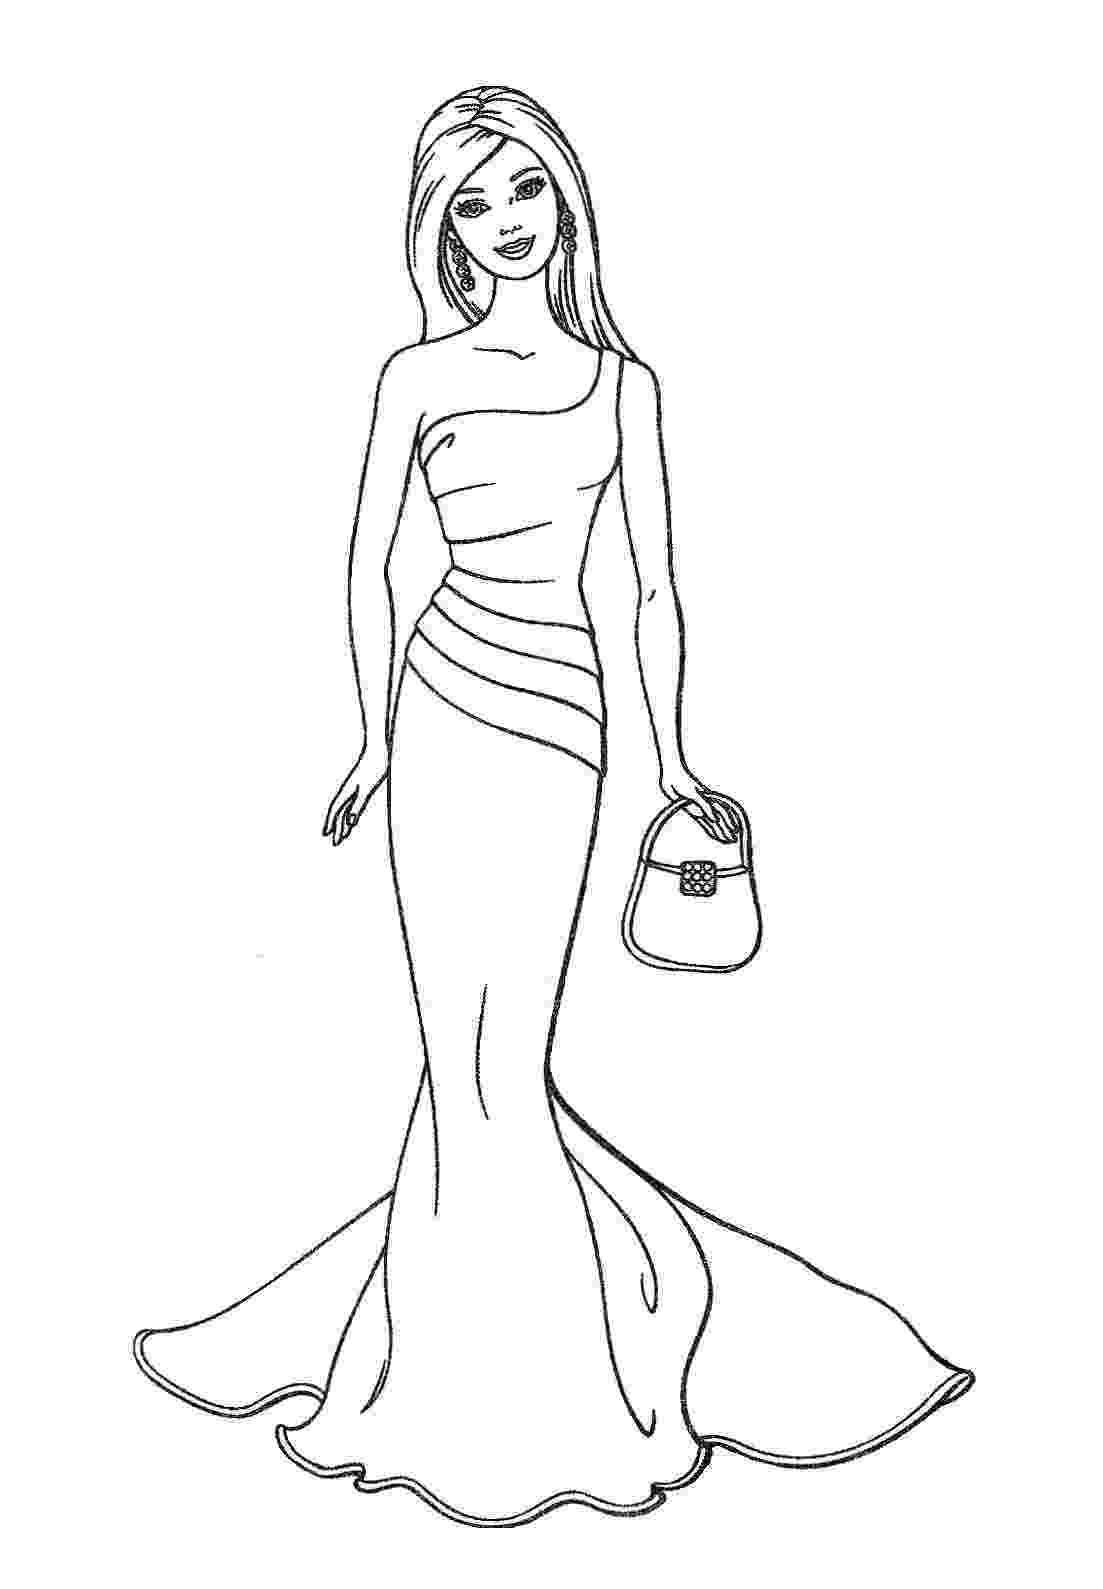 coloring pages of barbie barbie coloring pages coloring pages barbie of